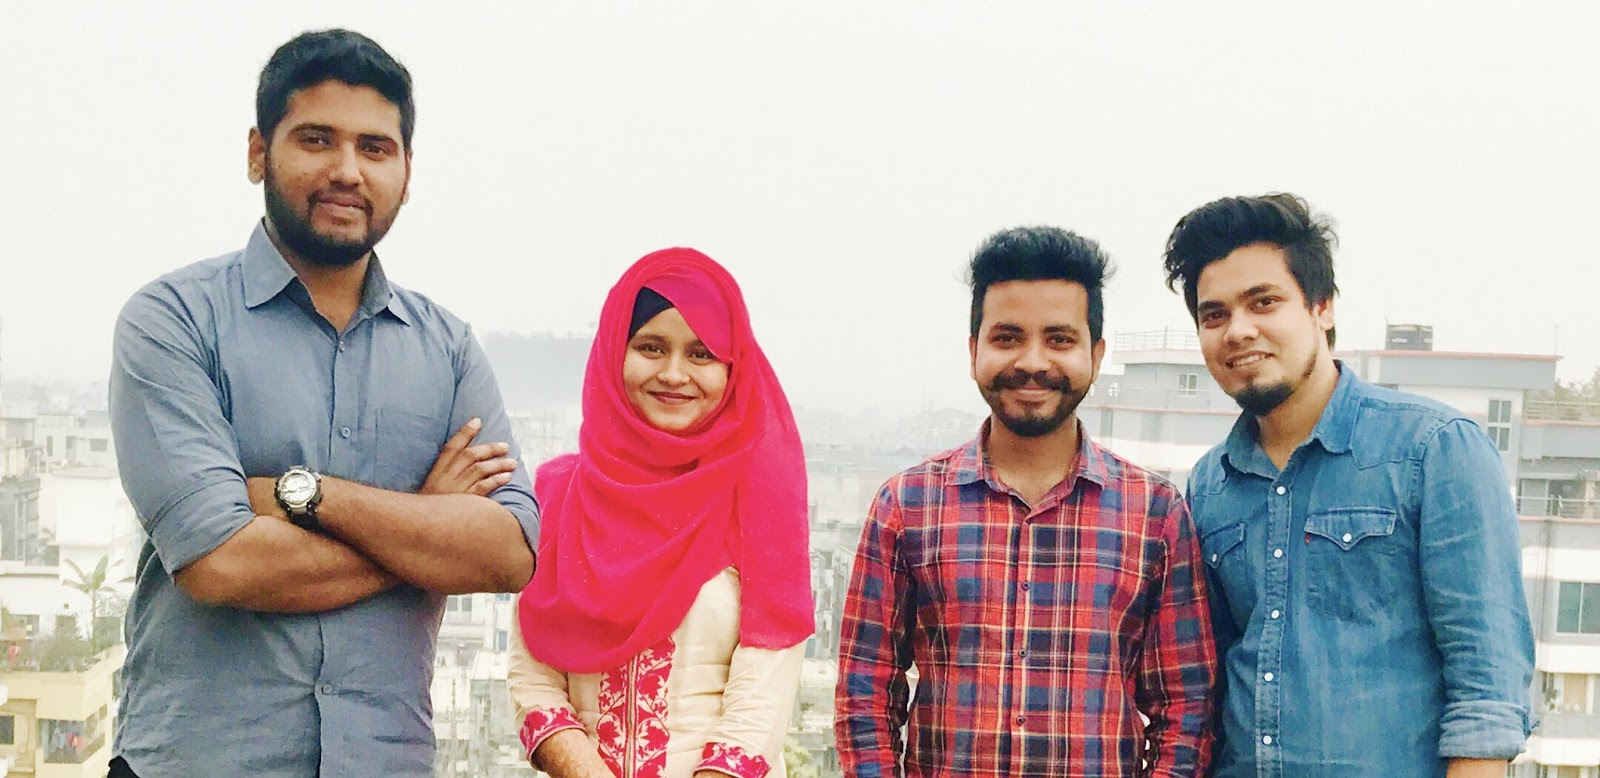 Members of Chattermill at Hubdhaka rooftop